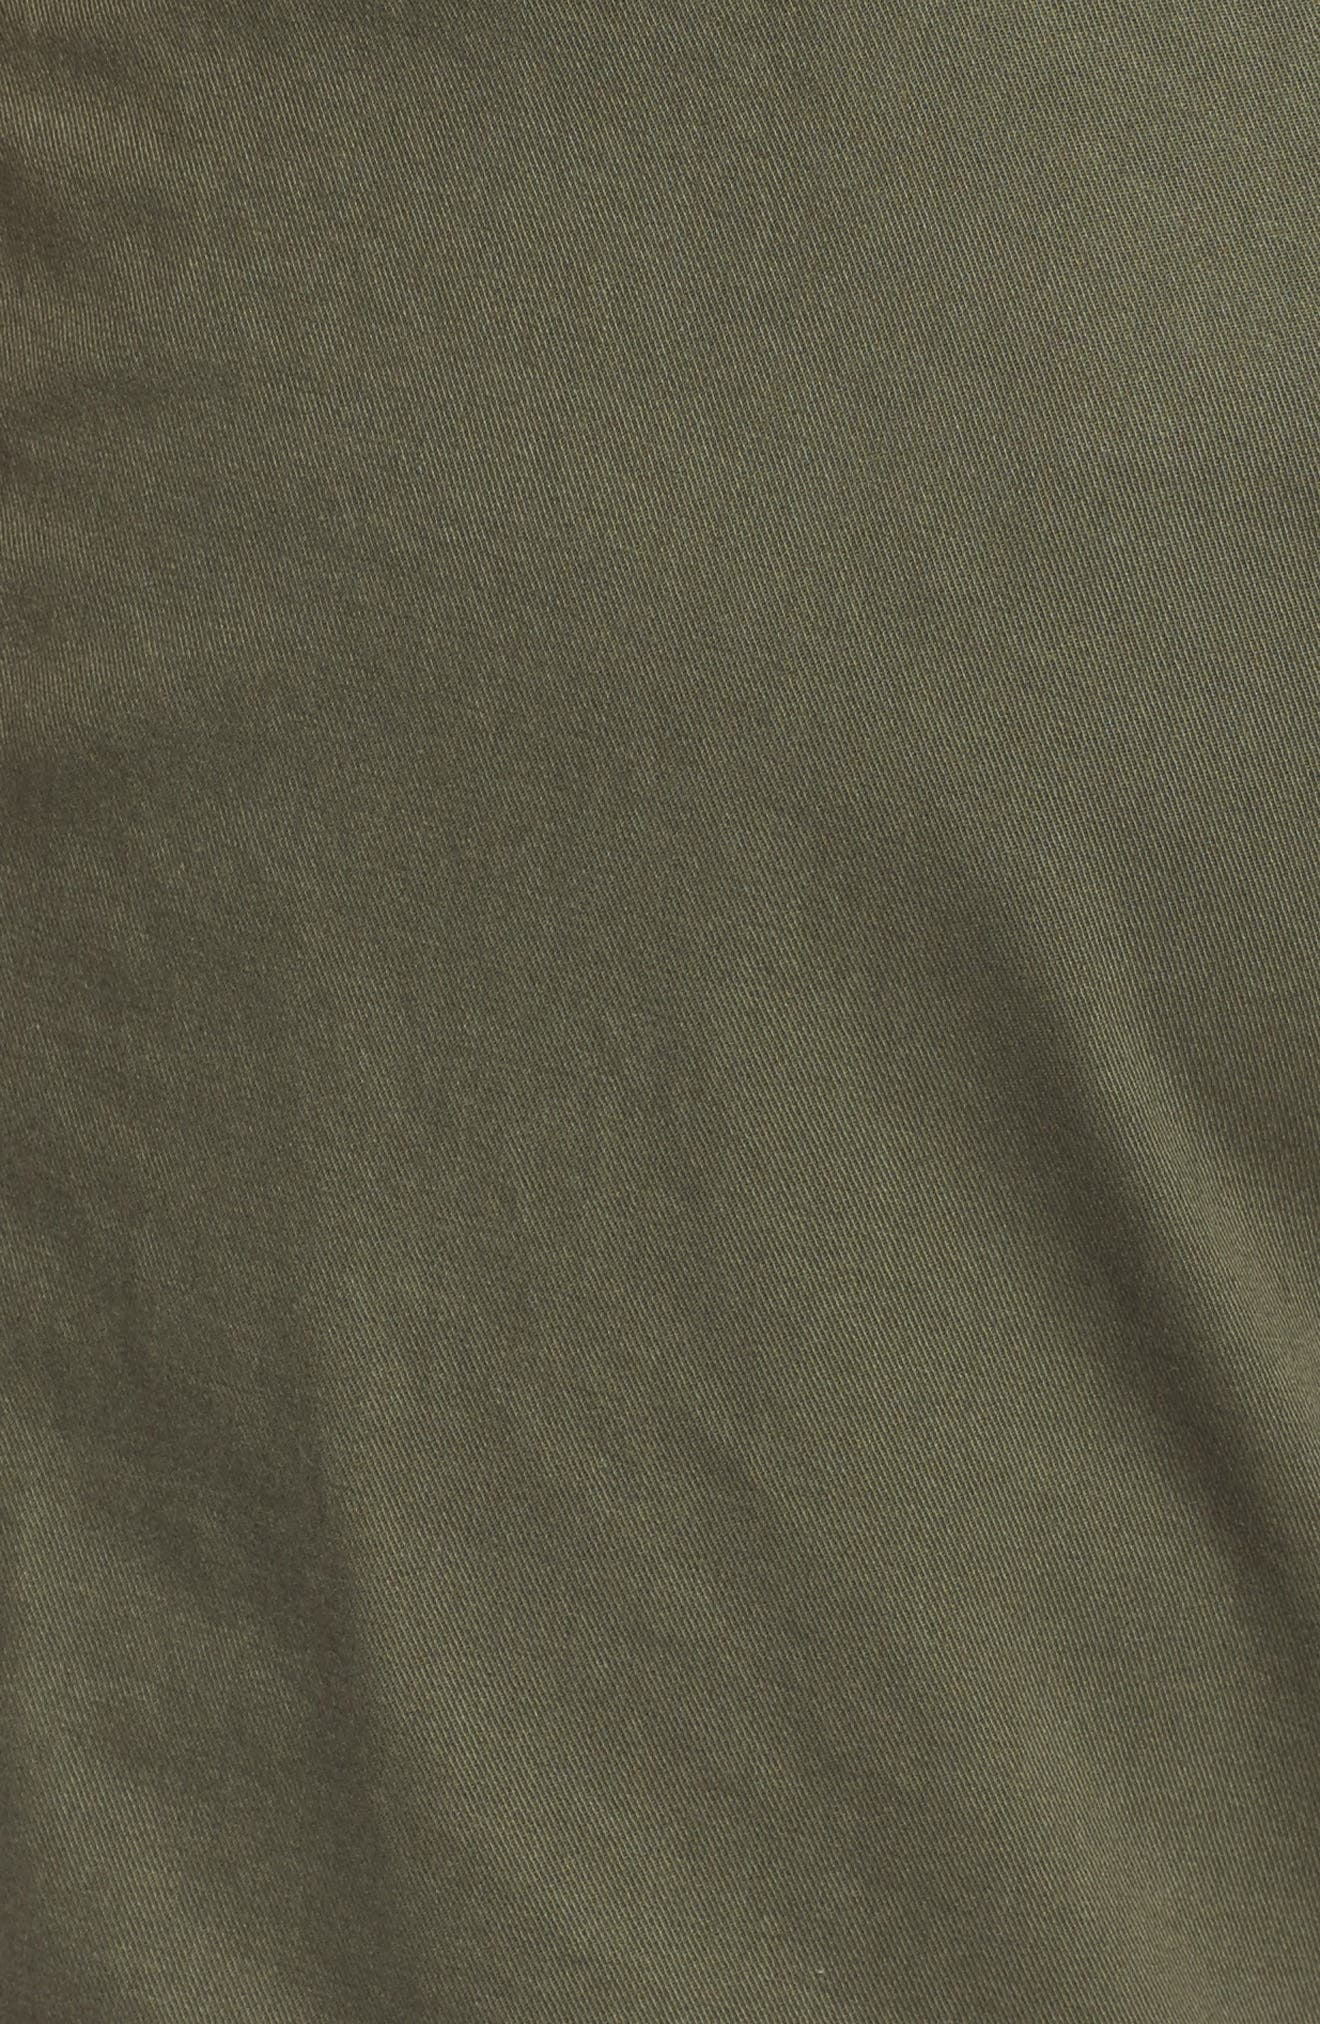 Belted Twill Shorts,                             Alternate thumbnail 6, color,                             Olive Sarma